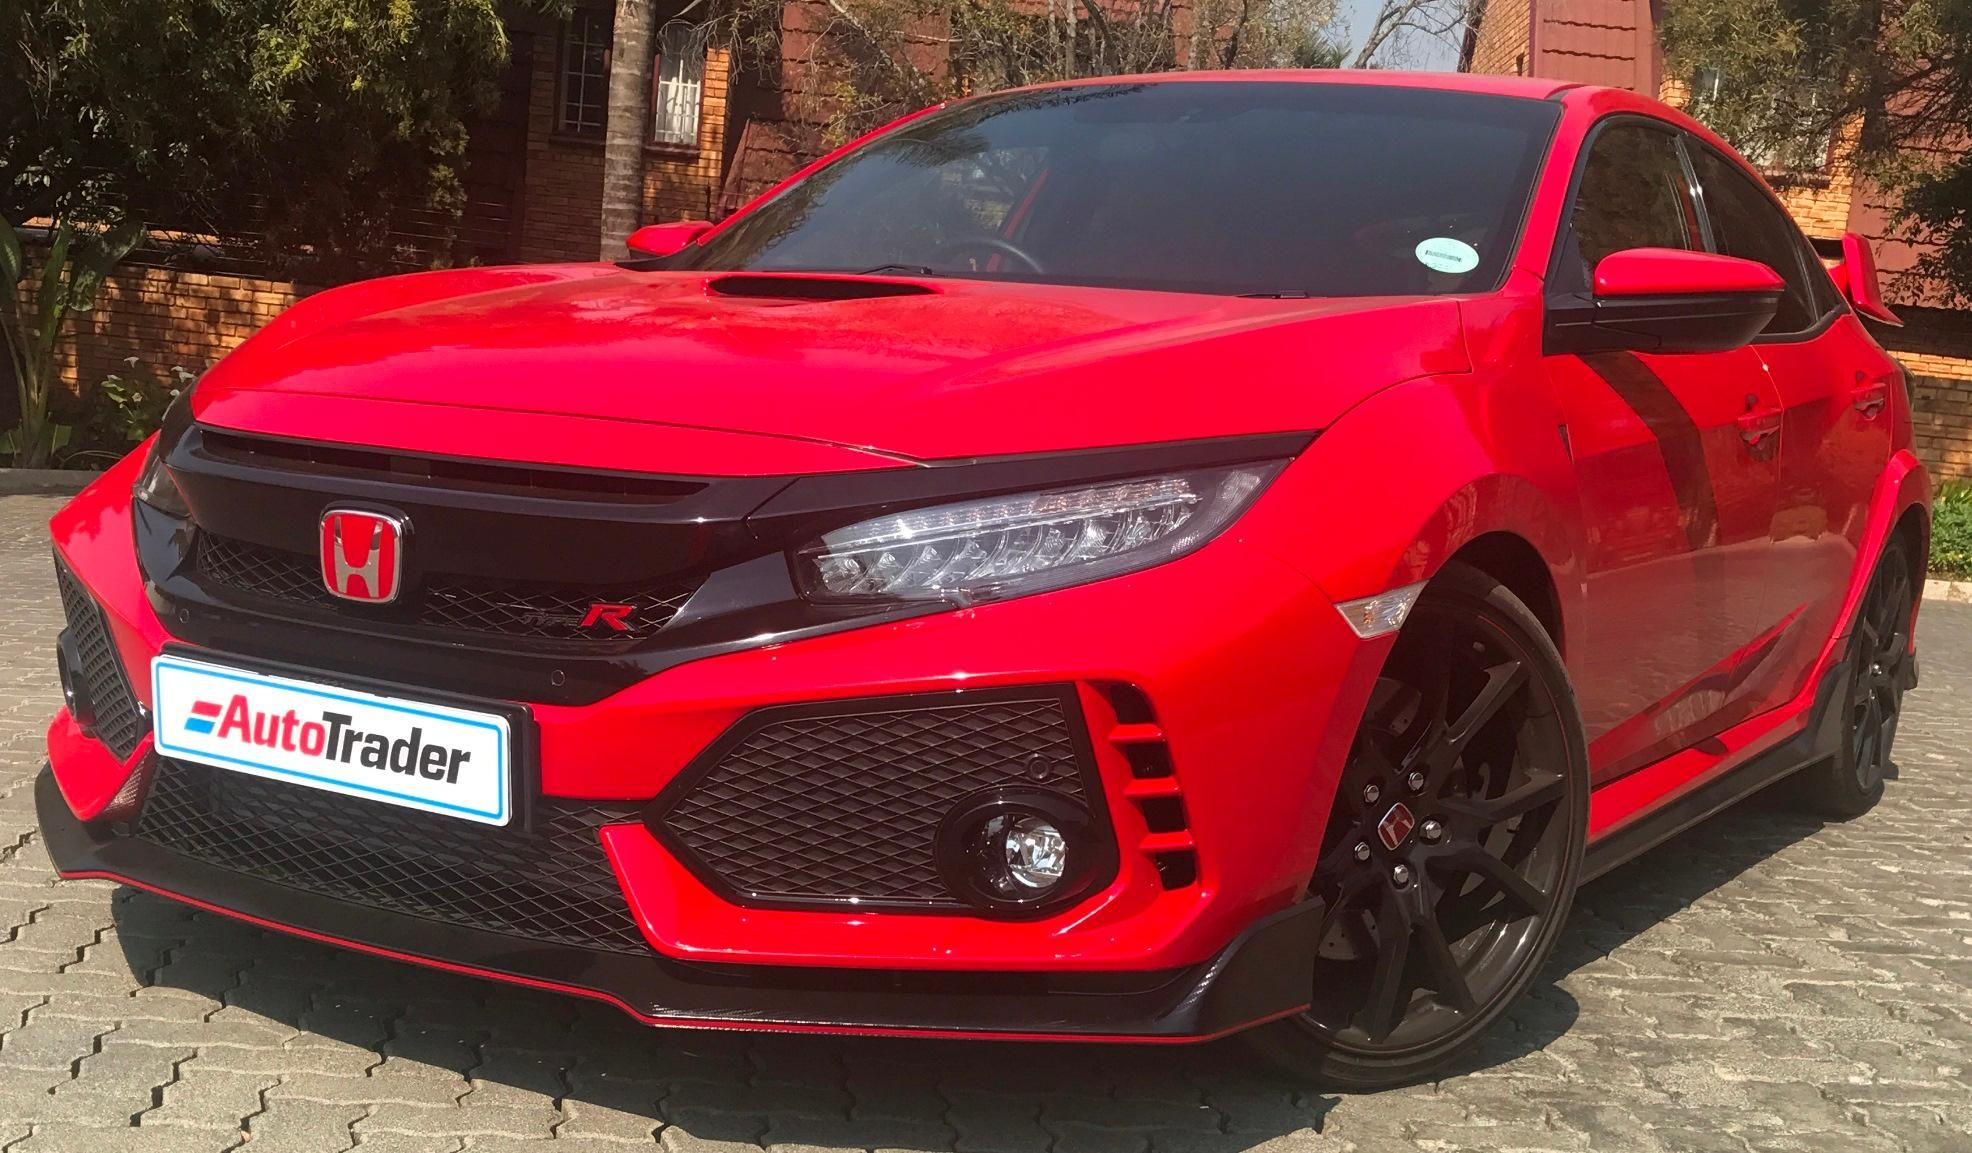 Where Are The Honda Civic Type R S Airbags Located Honda Civic Type R Honda Civic Honda